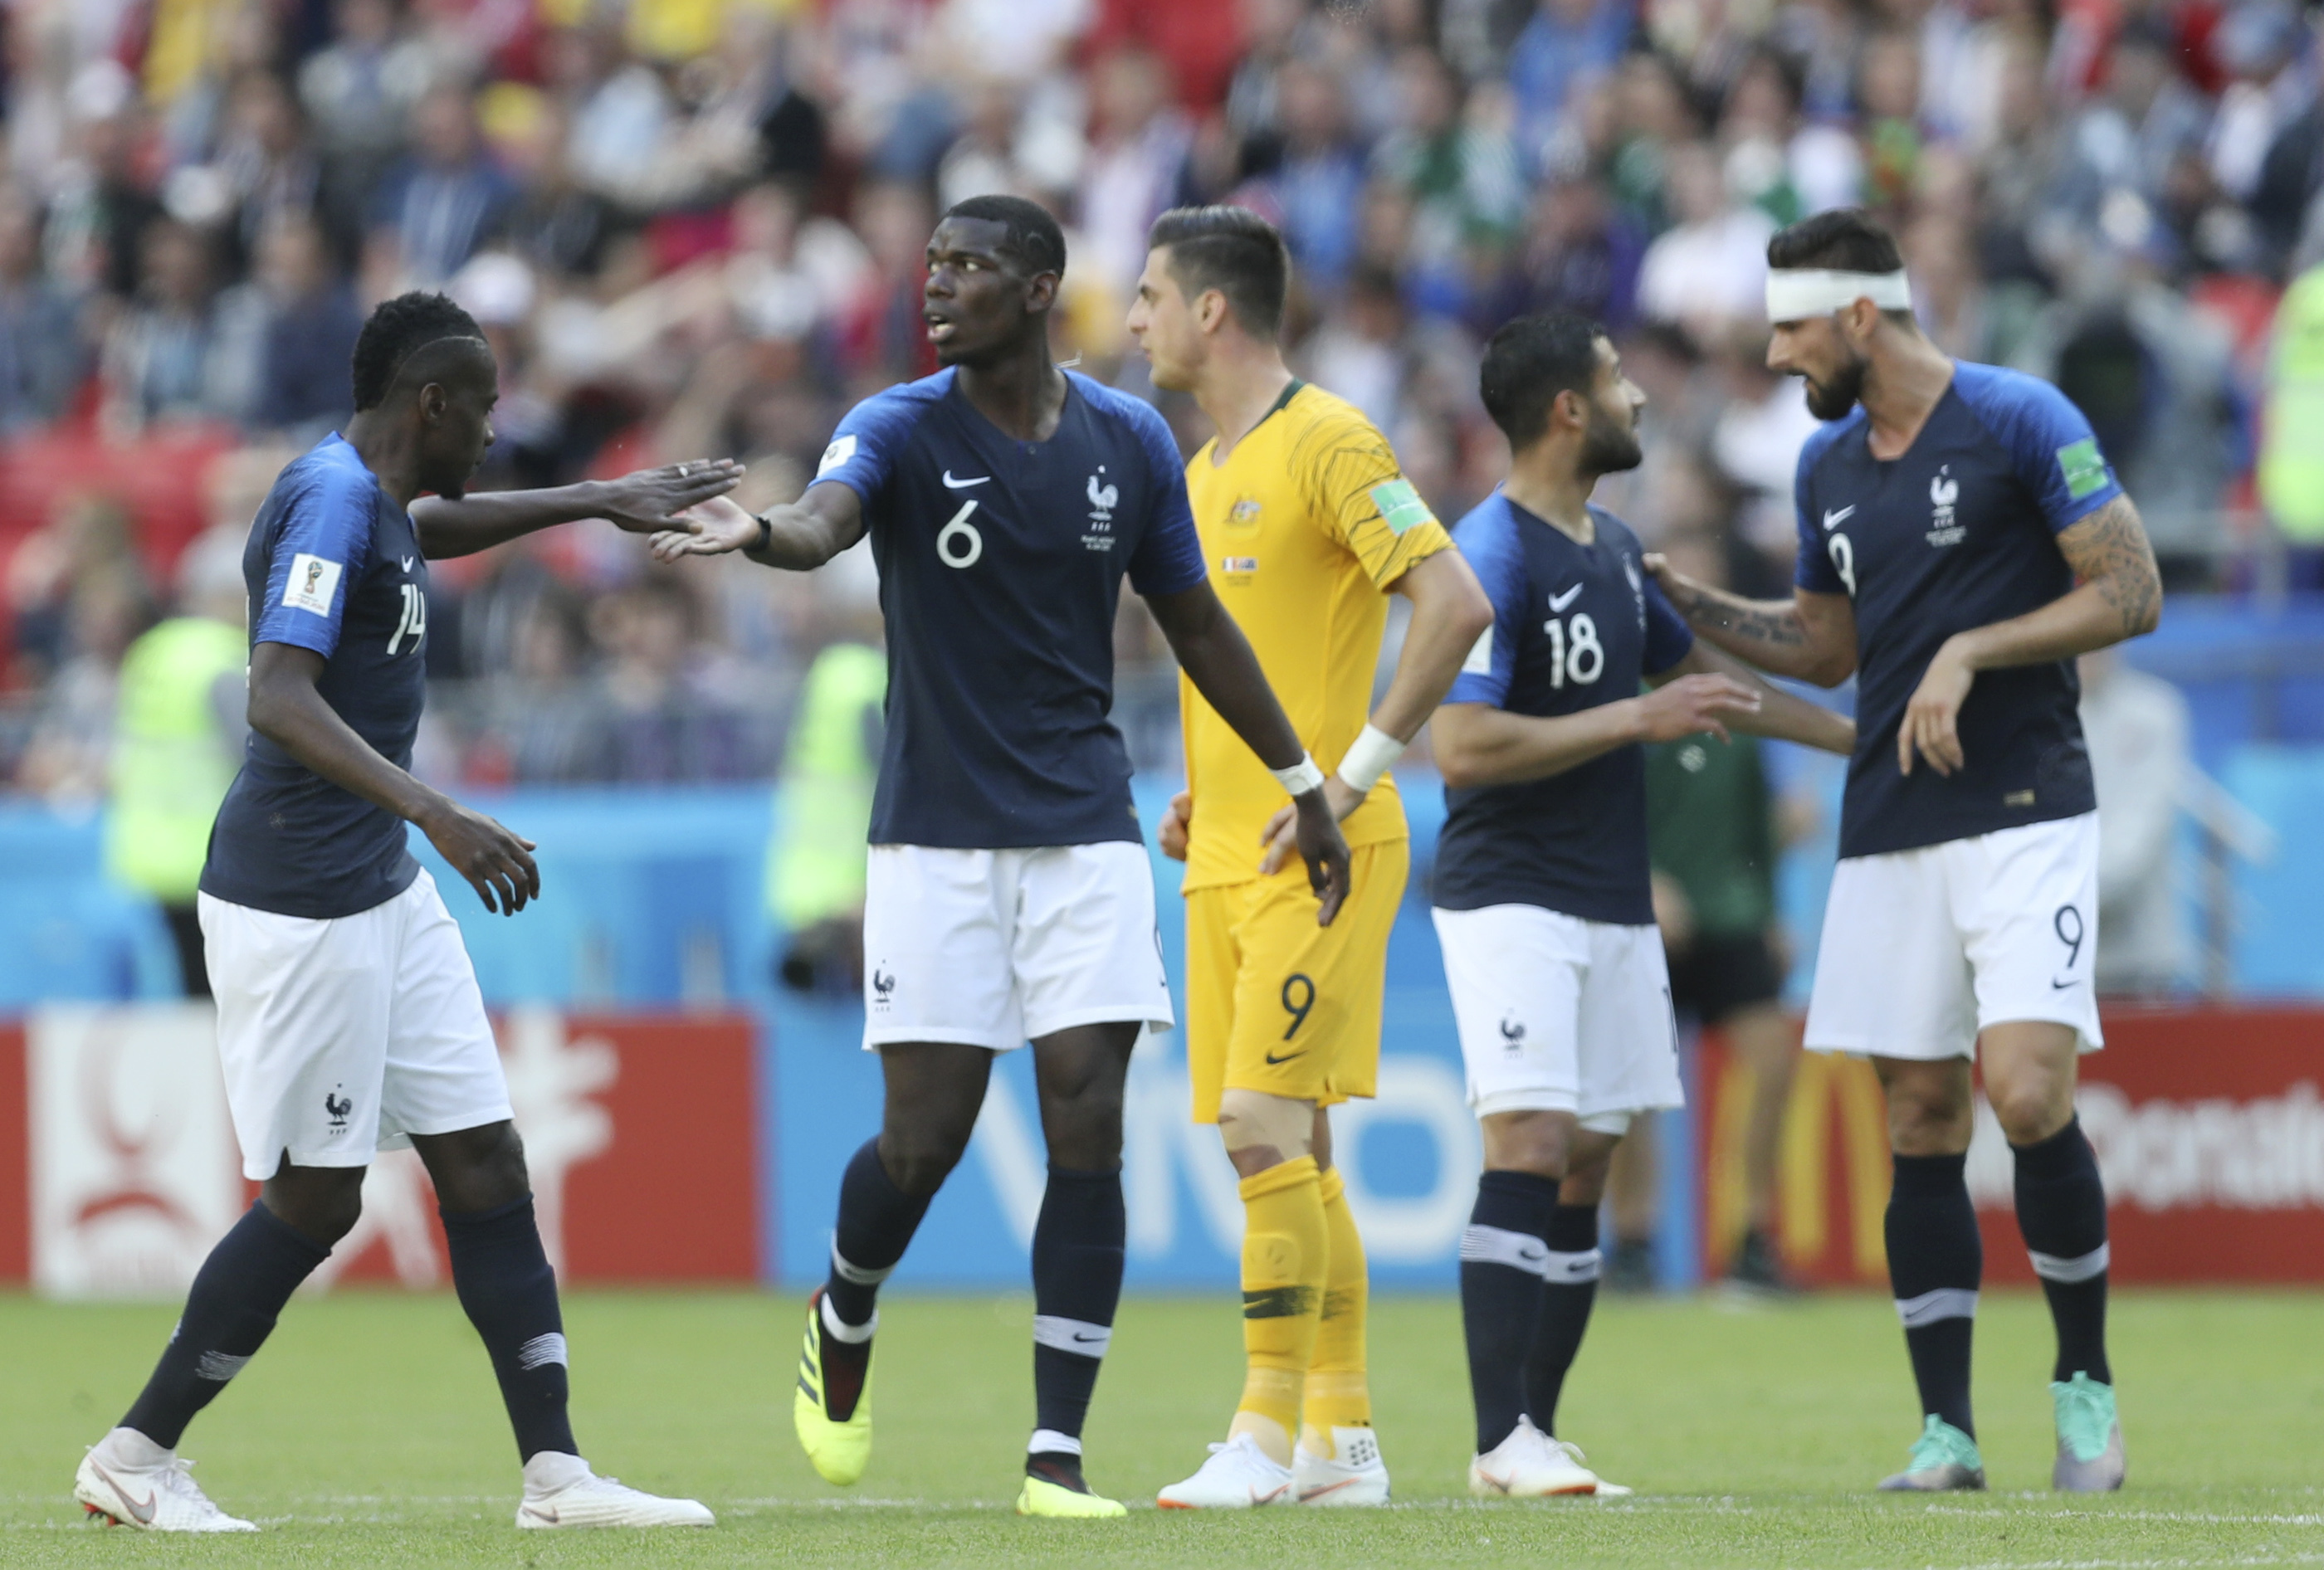 Federation Internationale de Football Association take away Pogba's goal for France